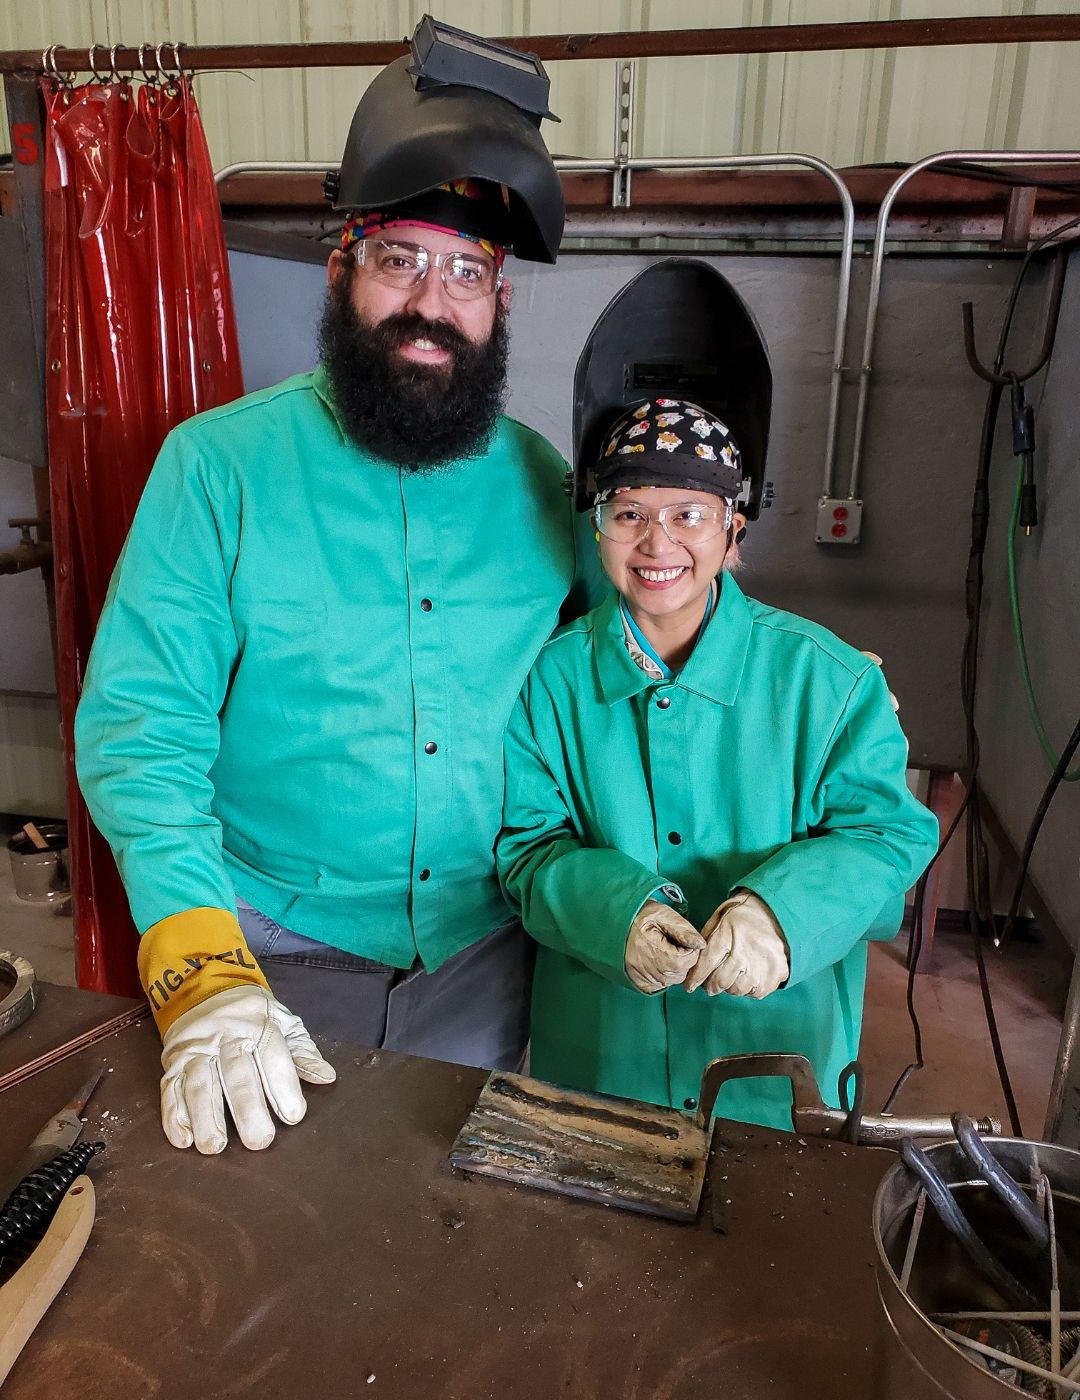 A photo of Chris and Shiela after the welding lesson.